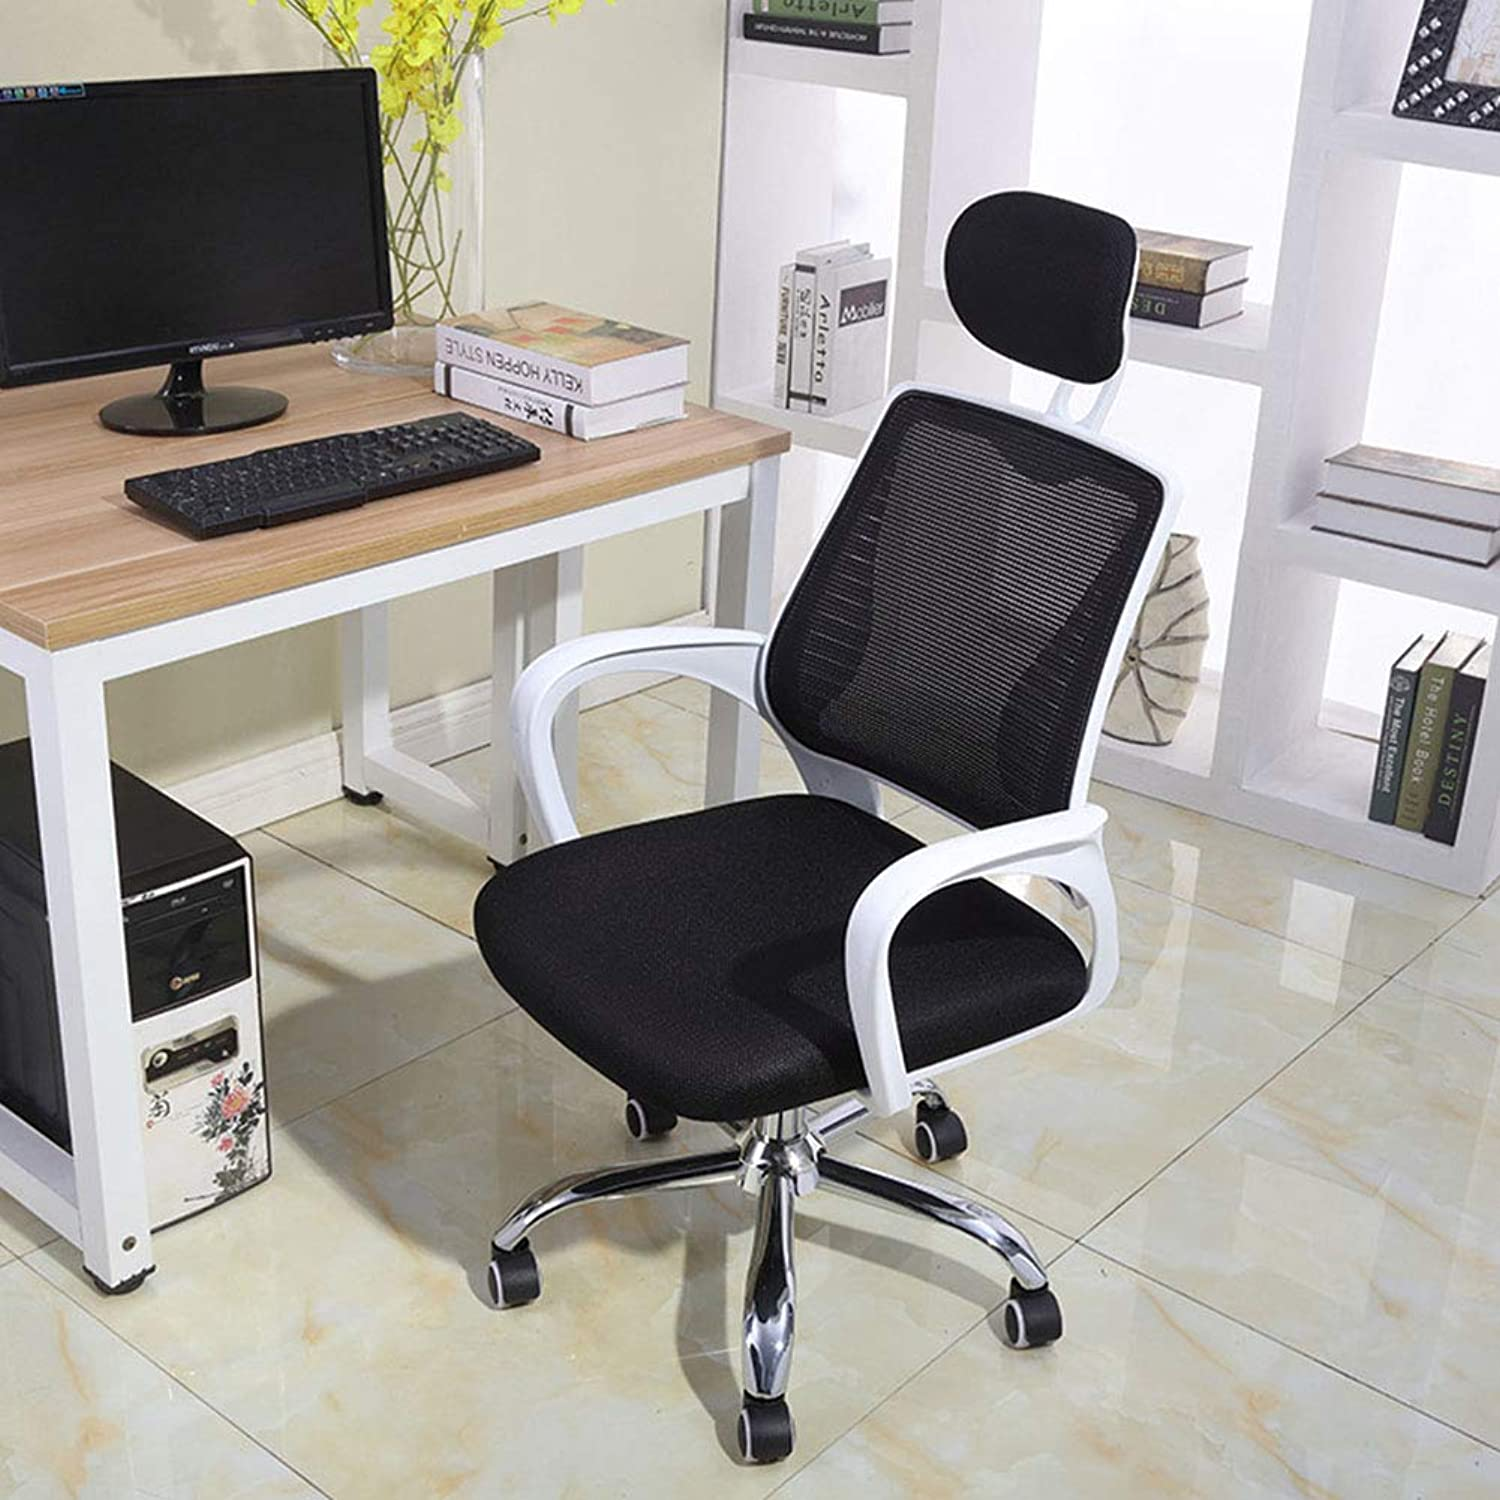 Computer Chair, Staff Study Study Office Swivel Chair Writing Dormitory Armrest Chair Mesh Seat 360 Degree Swivel Adjustable Seat Height Ergonomic Concept Durable and Stable Lever Operator Chairs